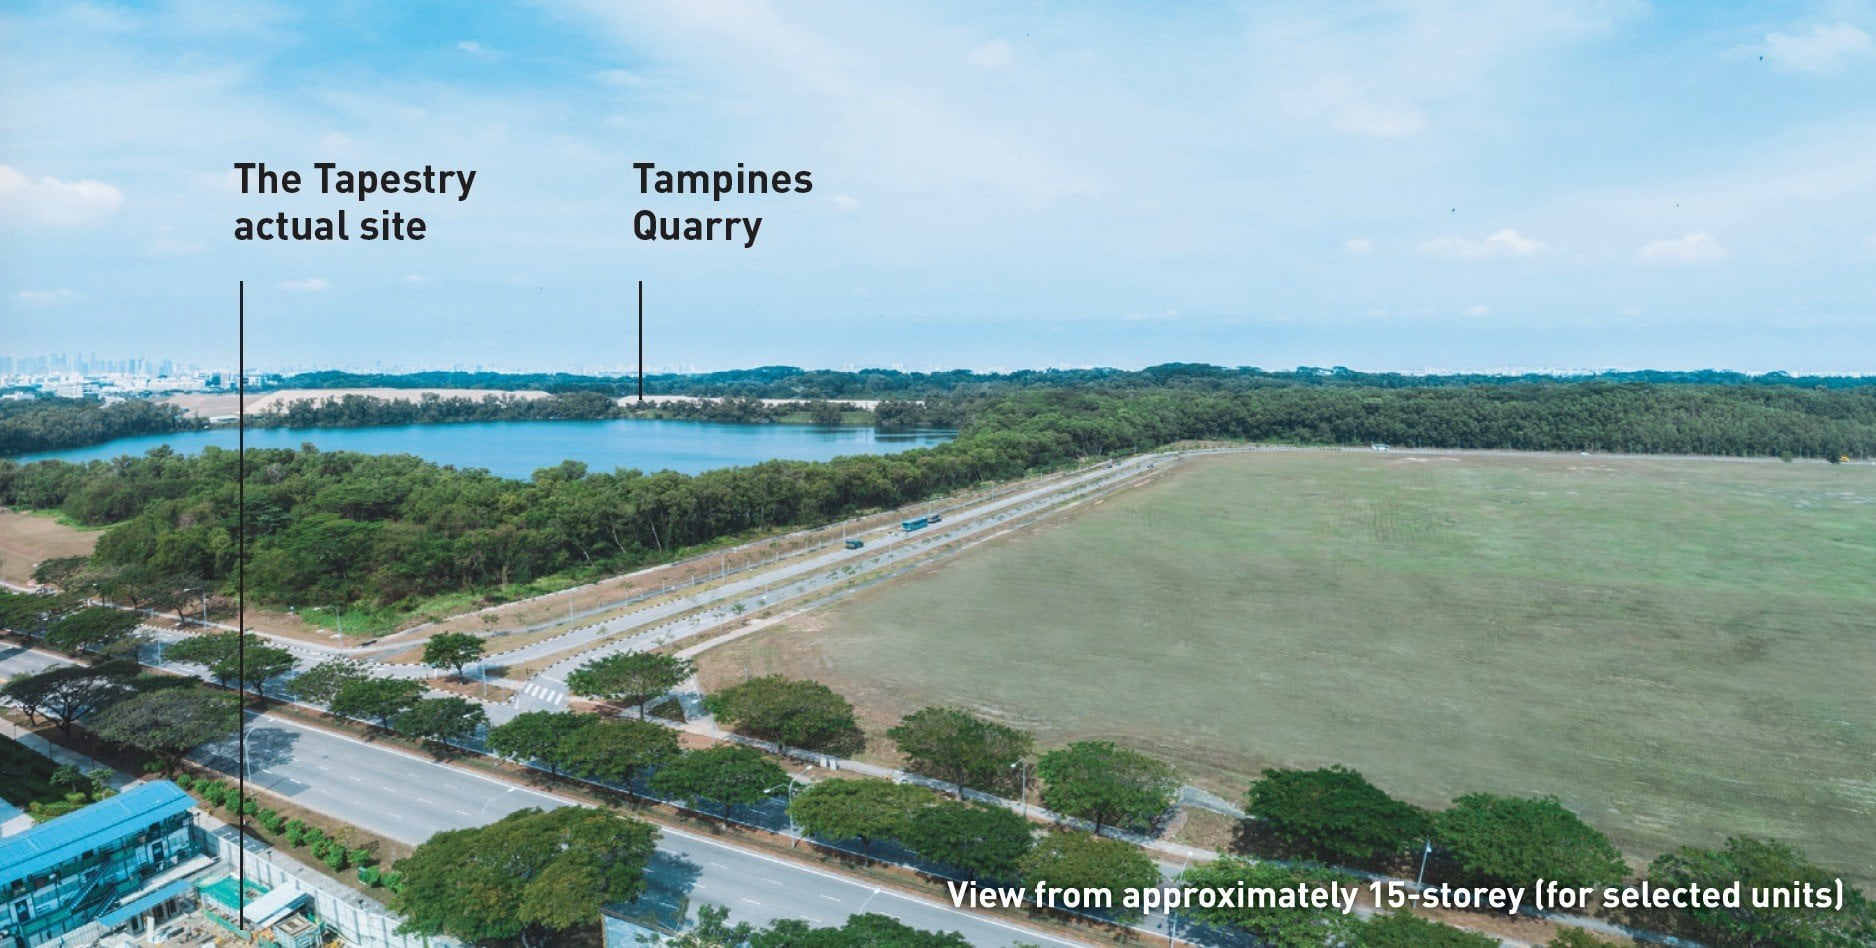 Tapestry-Tampines-Quarry View